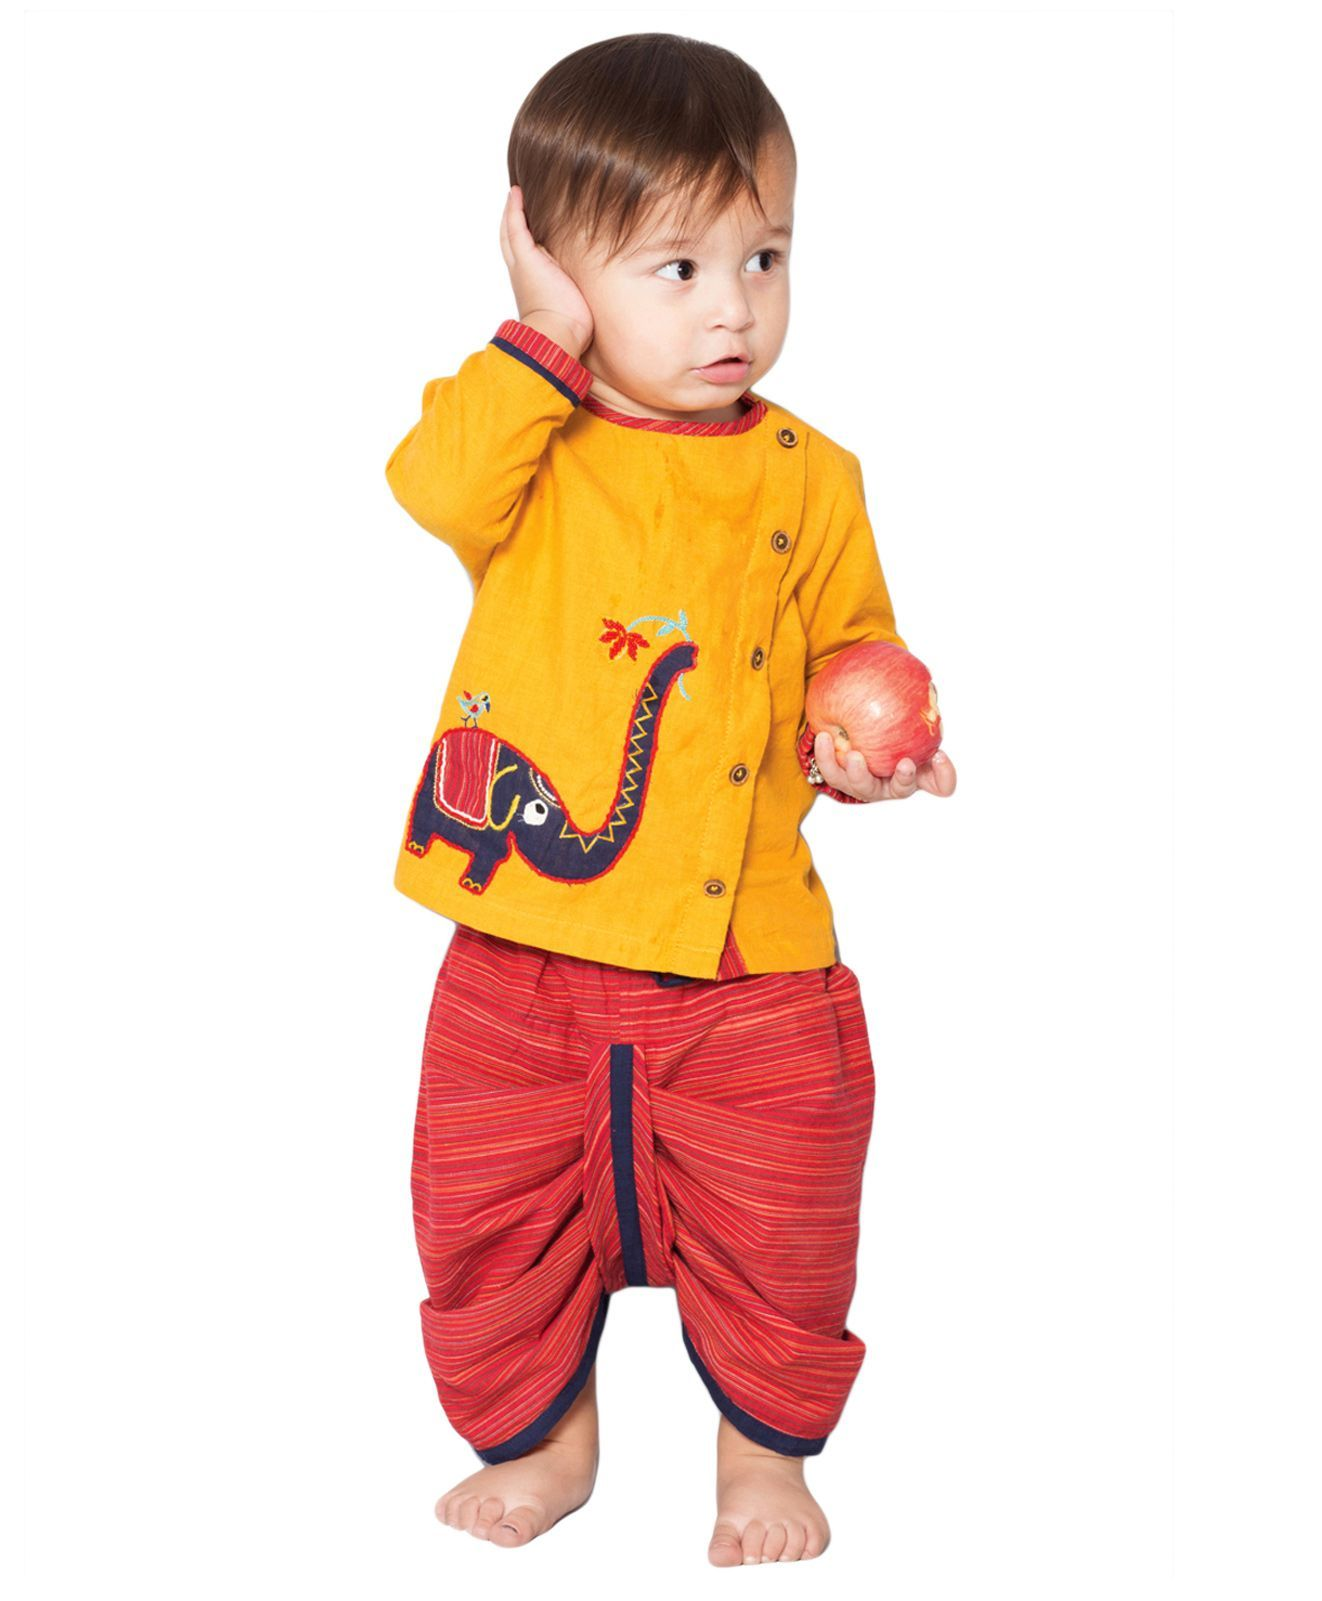 Buy Tiber Taber Elephantasia Dhoti Kurta Set Yellow Red For Boys 0 3 Months Online In India At Best Price From Fi Kids Outfits Baby Boy Outfits Boy Outfits